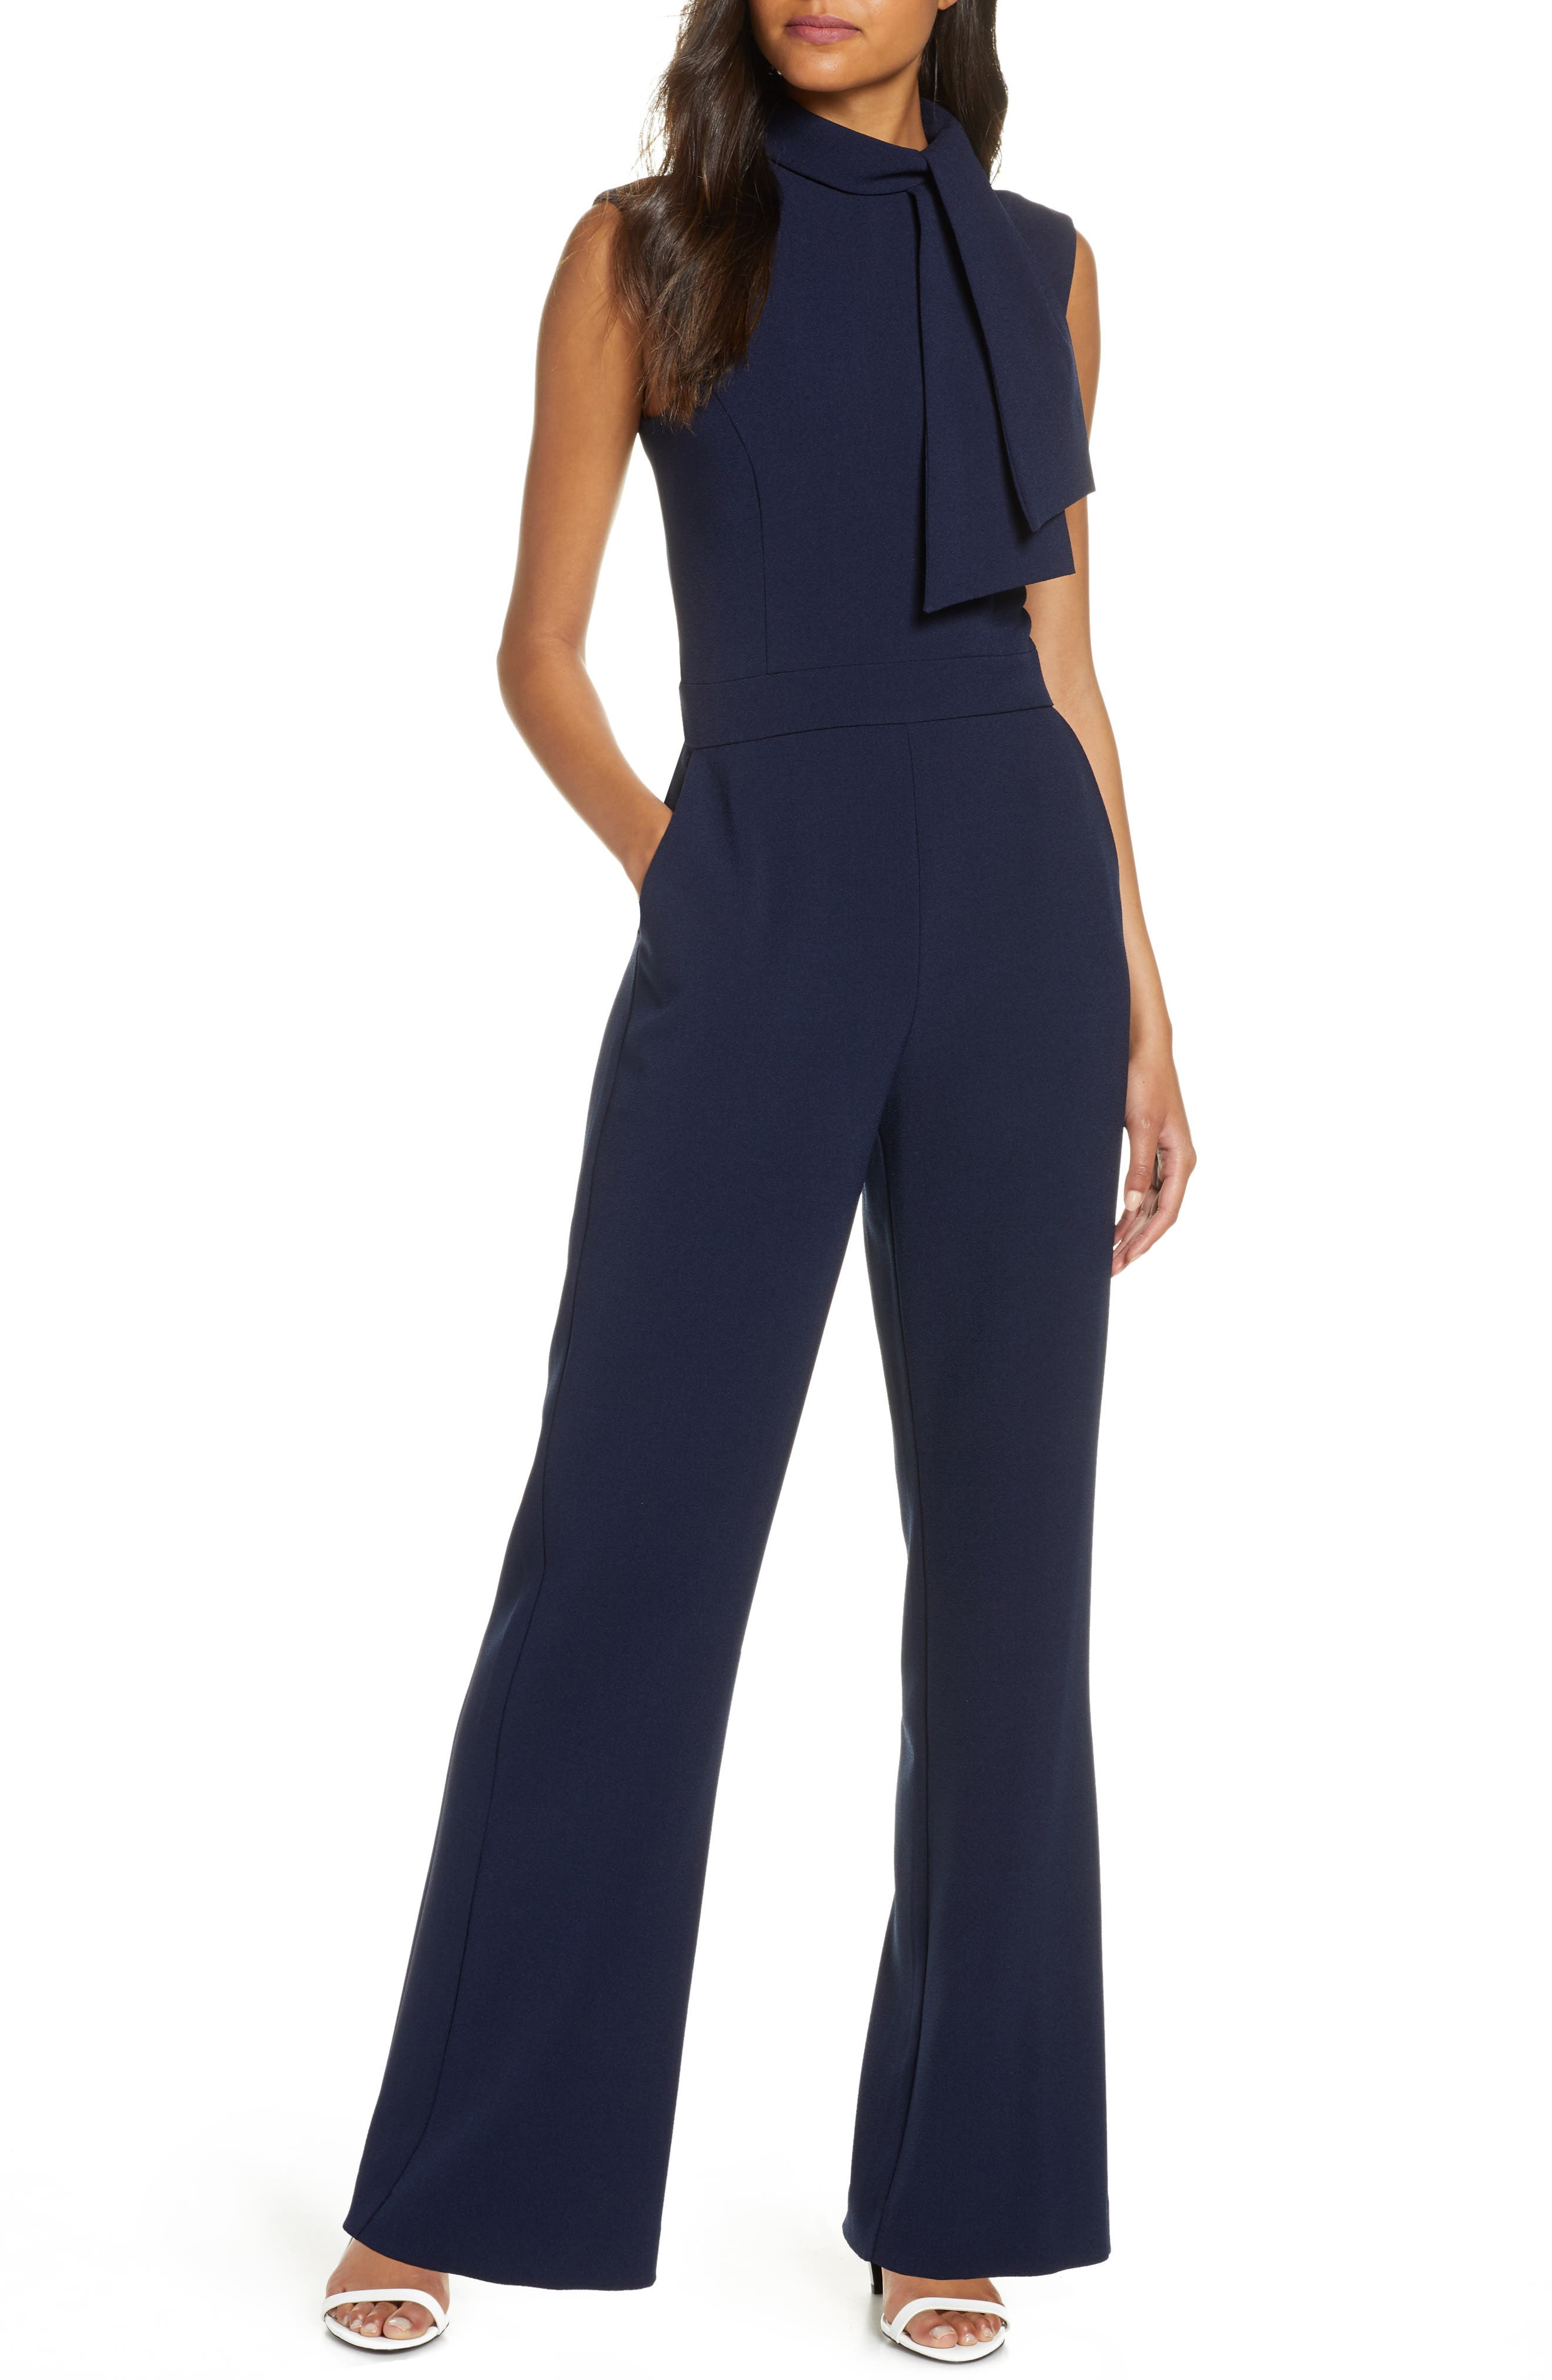 Harper Rose Scarf Neck Crepe Jumpsuit (Regular & Petite)